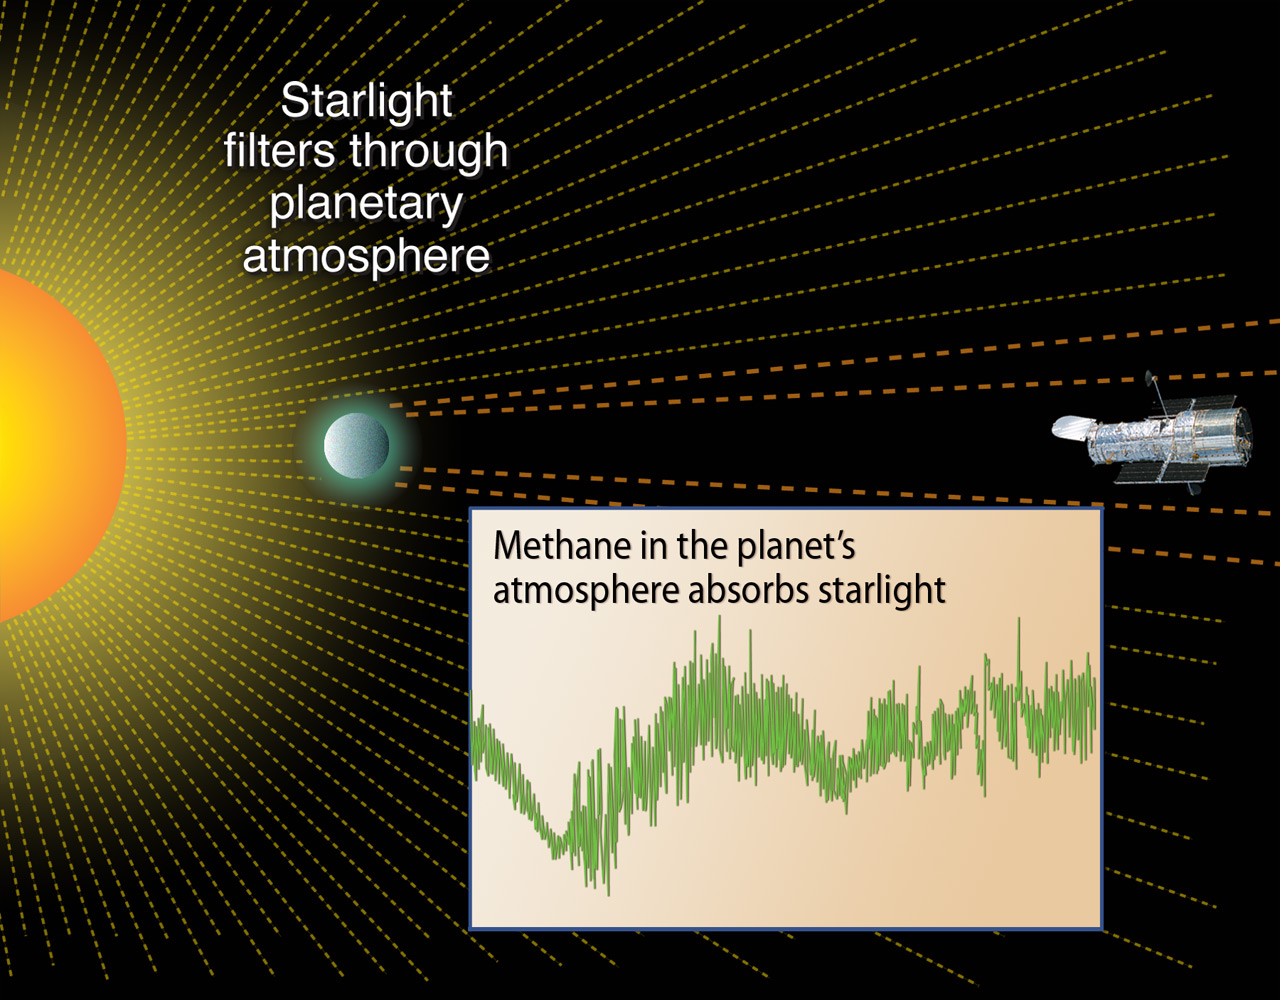 Sodium in atmosphere of exoplanet HD 209458